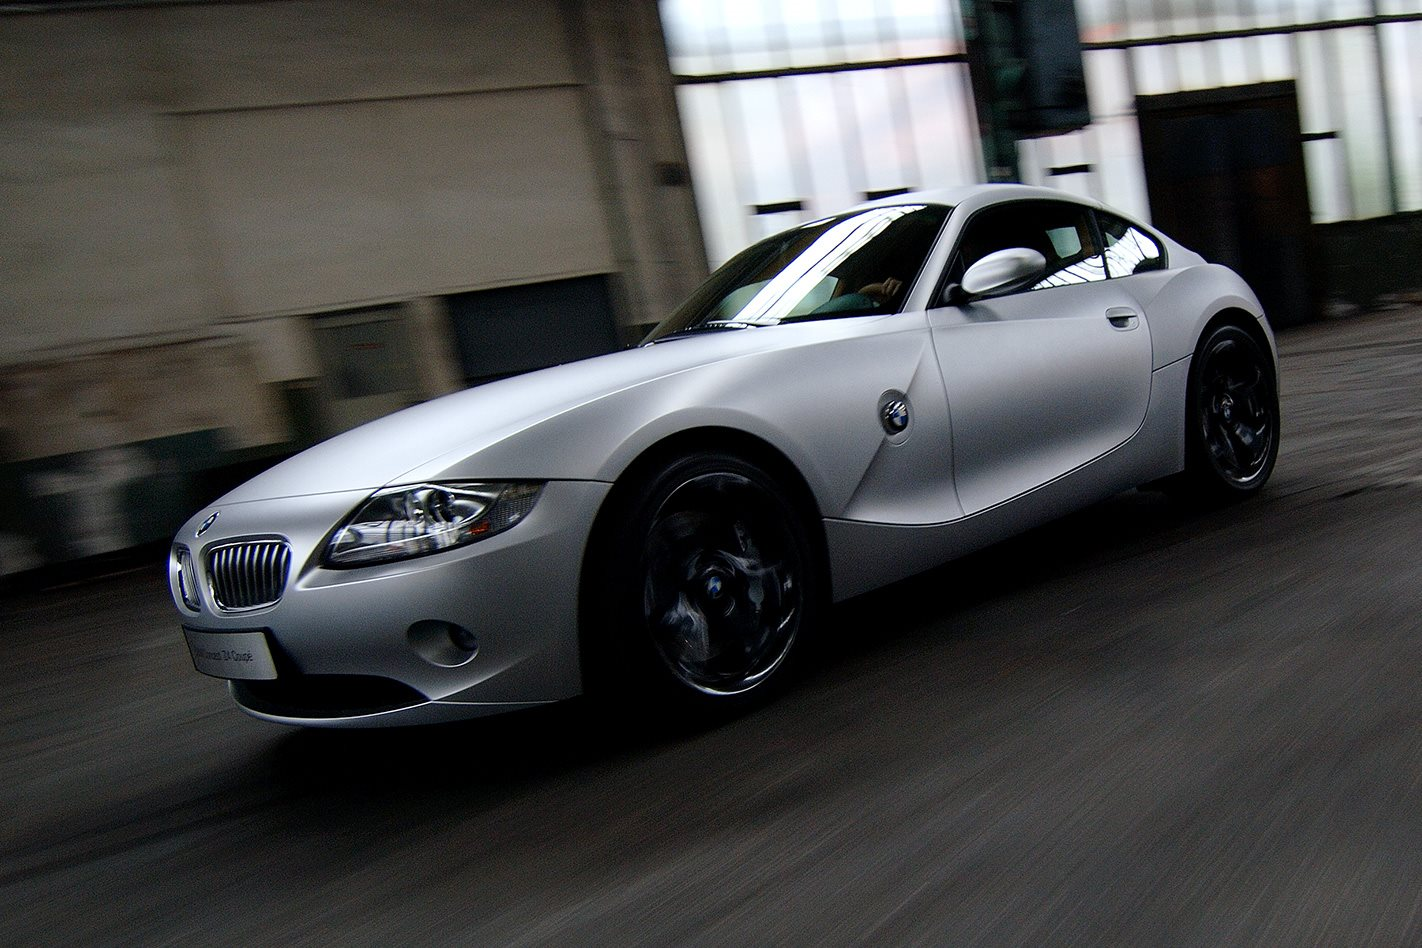 2006 BMW Z4 Coupe first look: Classic MOTOR